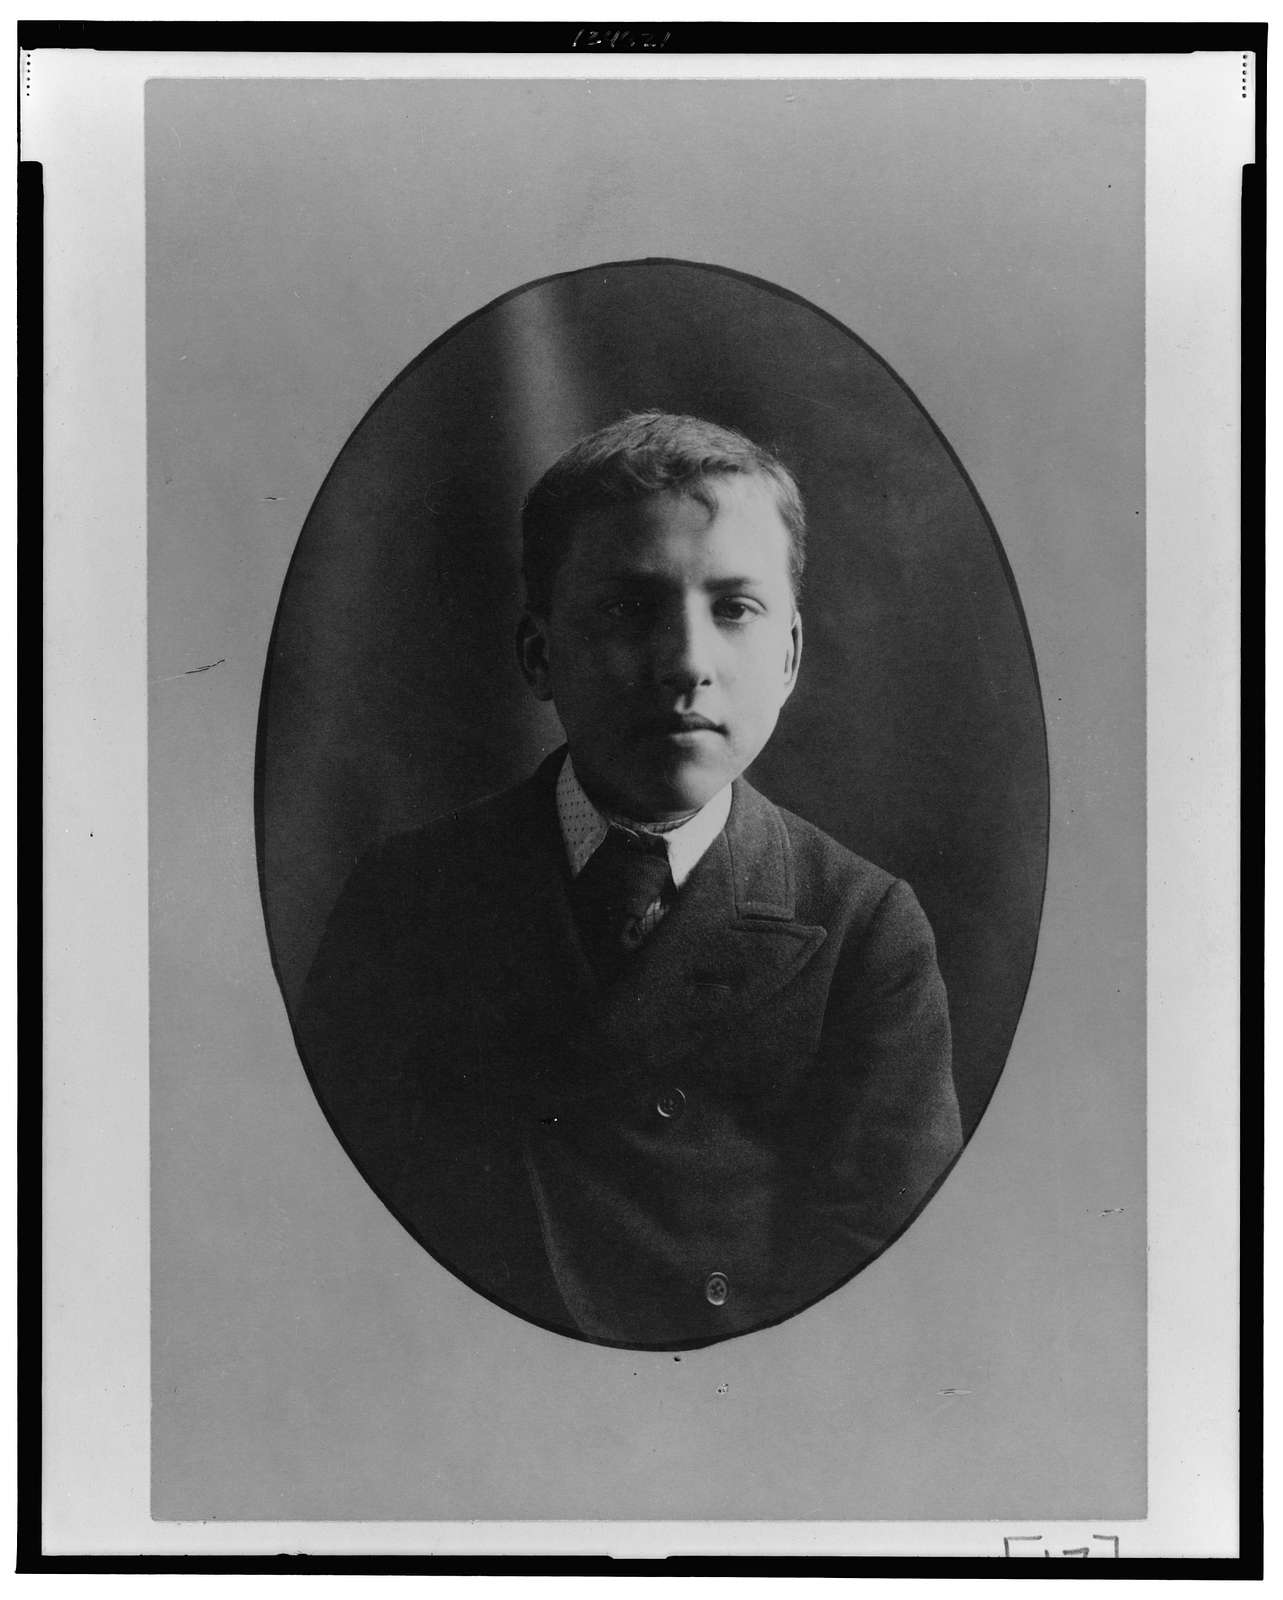 [African American boy, head-and-shoulders portrait, facing front]